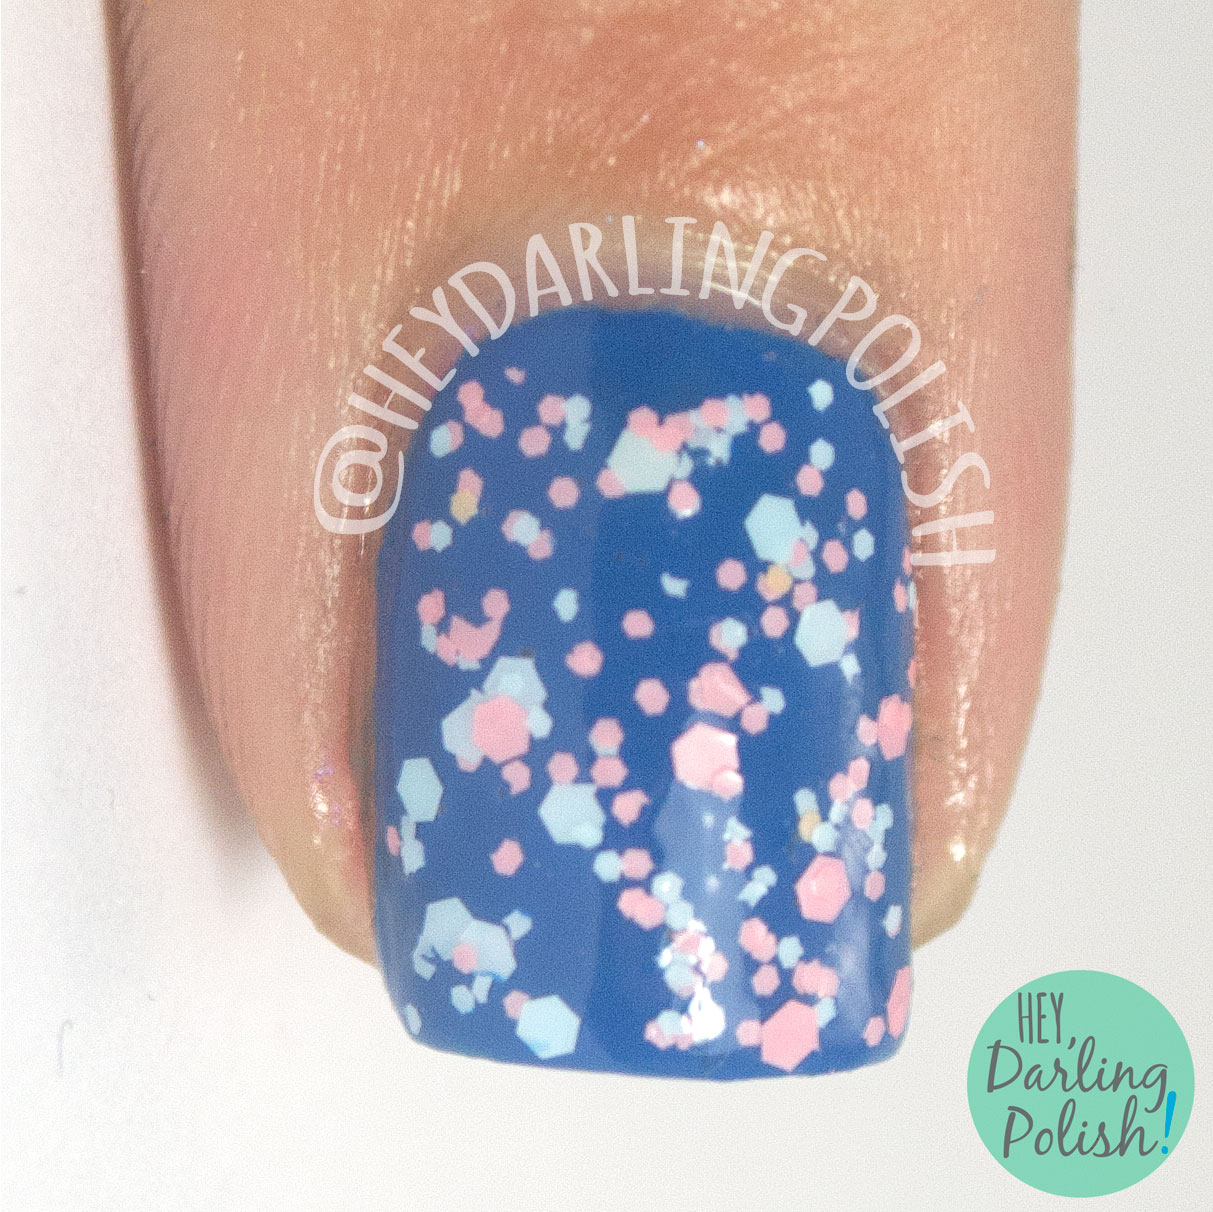 summer sorbet, glitter, blue, pink, nails, nail polish, indie polish, indie nail polish, live life polished, hey darling polish, farewell summer,